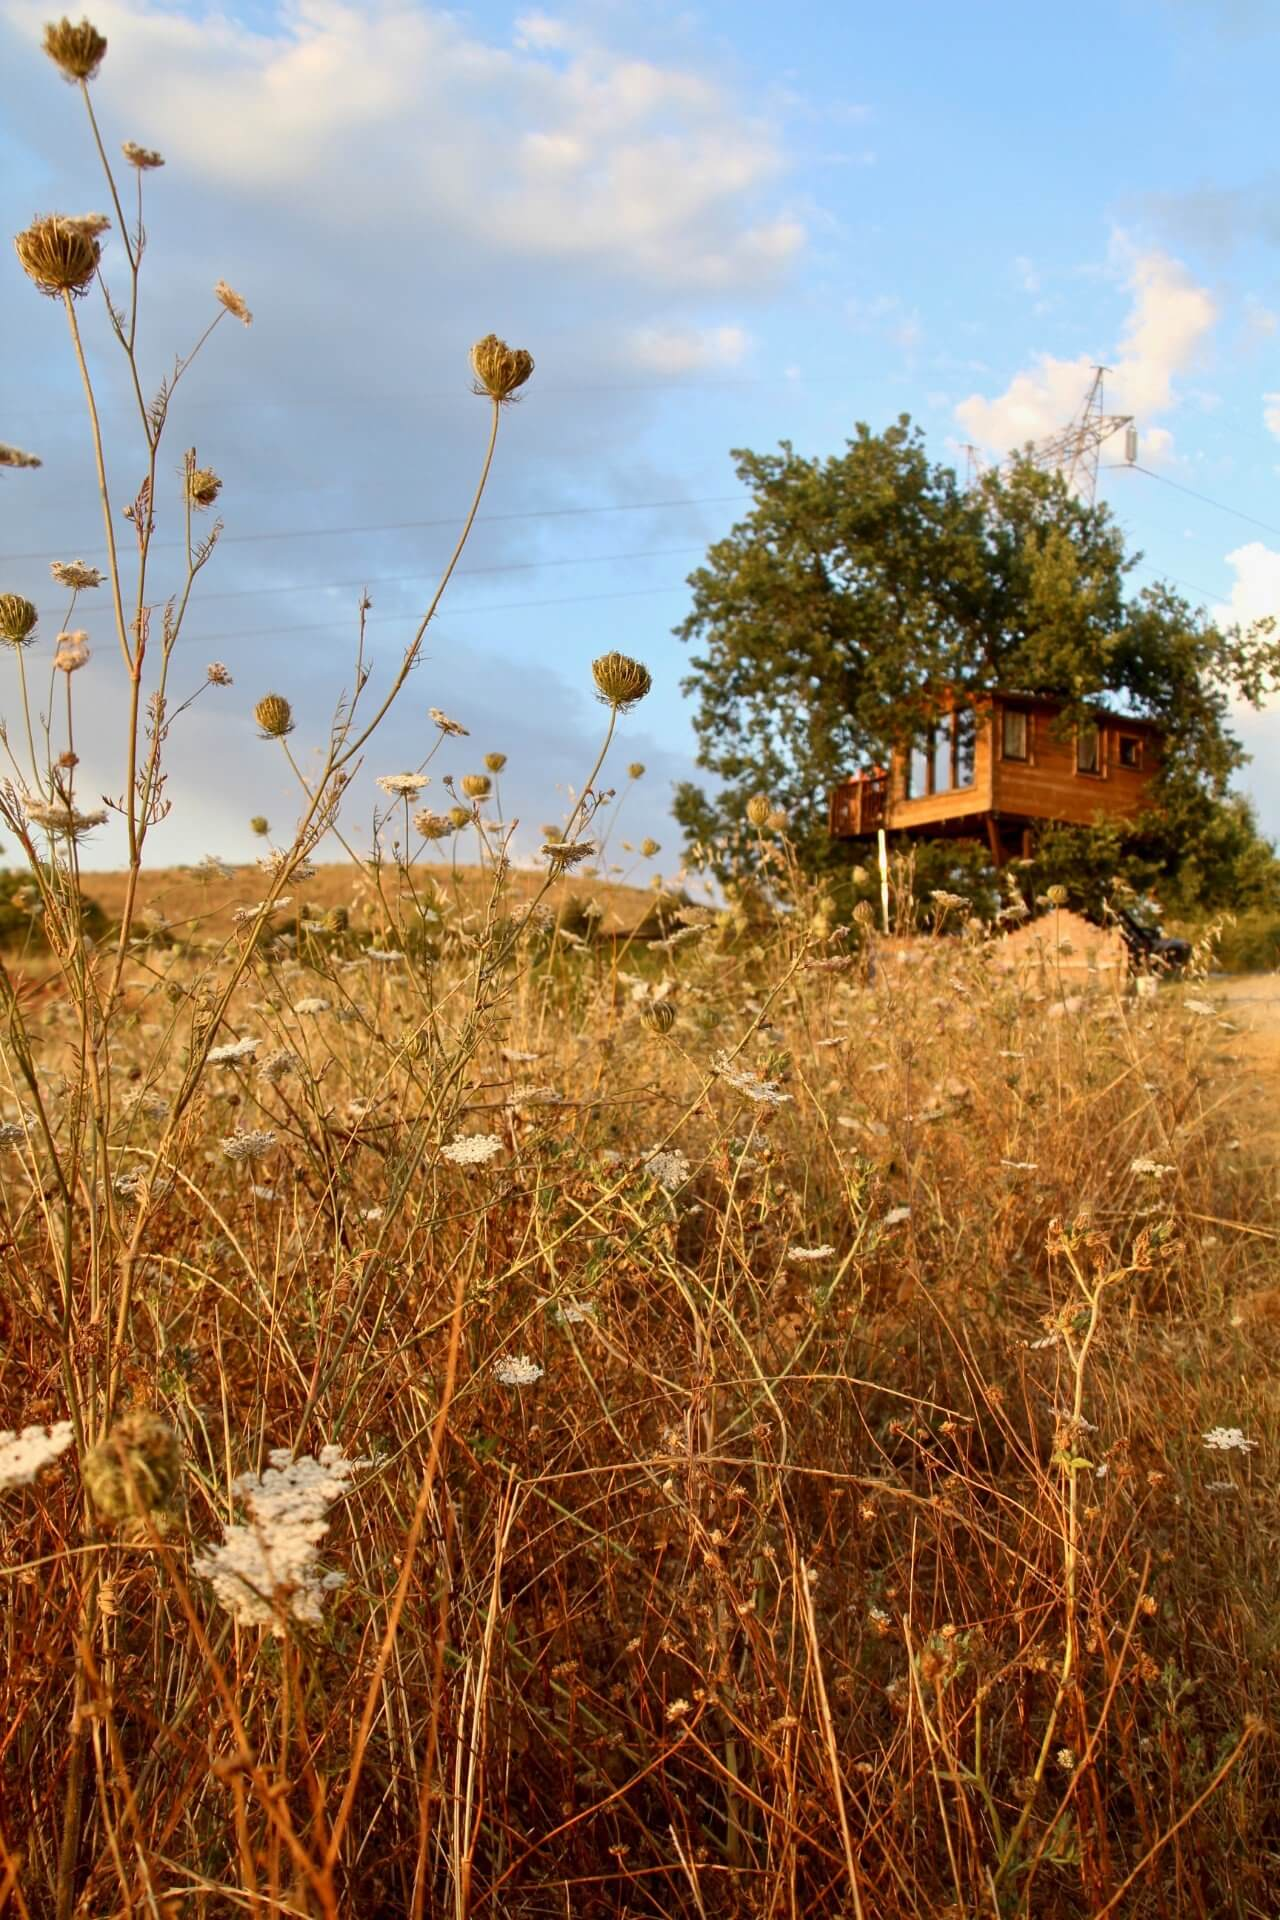 GLAMPING IL SOLE 6 PASSIONE GLAMPING